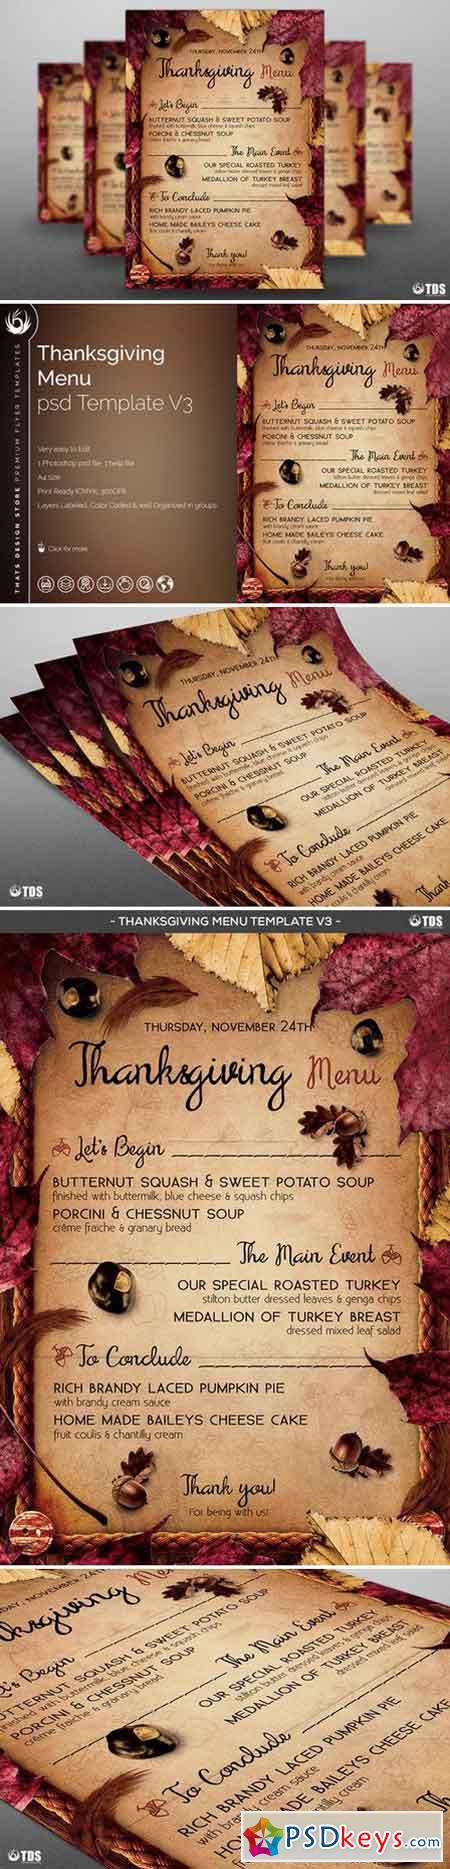 Thanksgiving Menu Template V3 904325